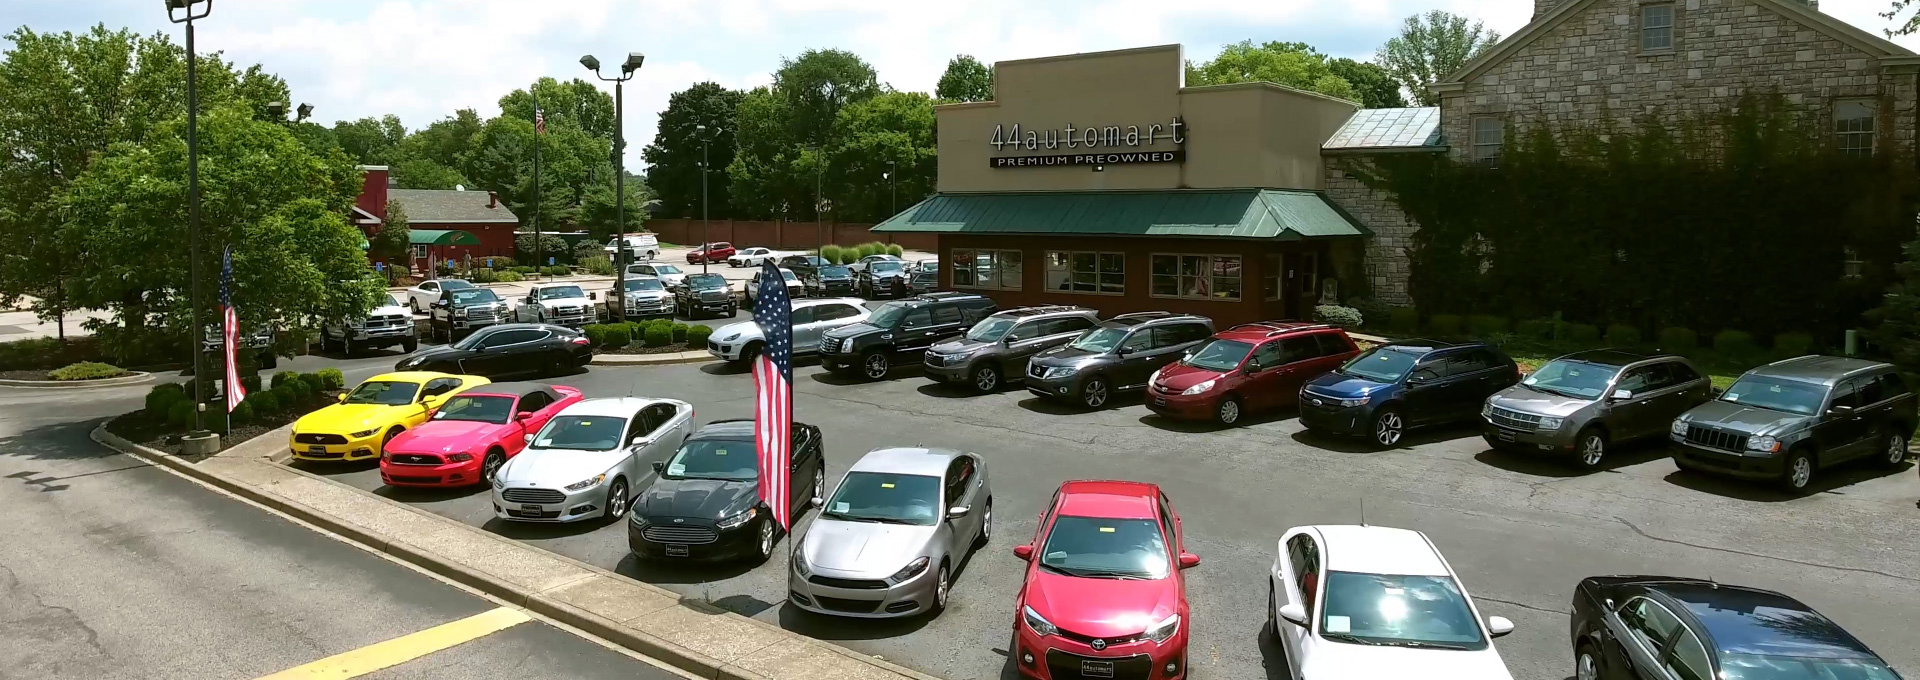 Car Dealerships Louisville Ky >> 44 Auto Mart Hurstbourne Louisville Ky New Used Cars